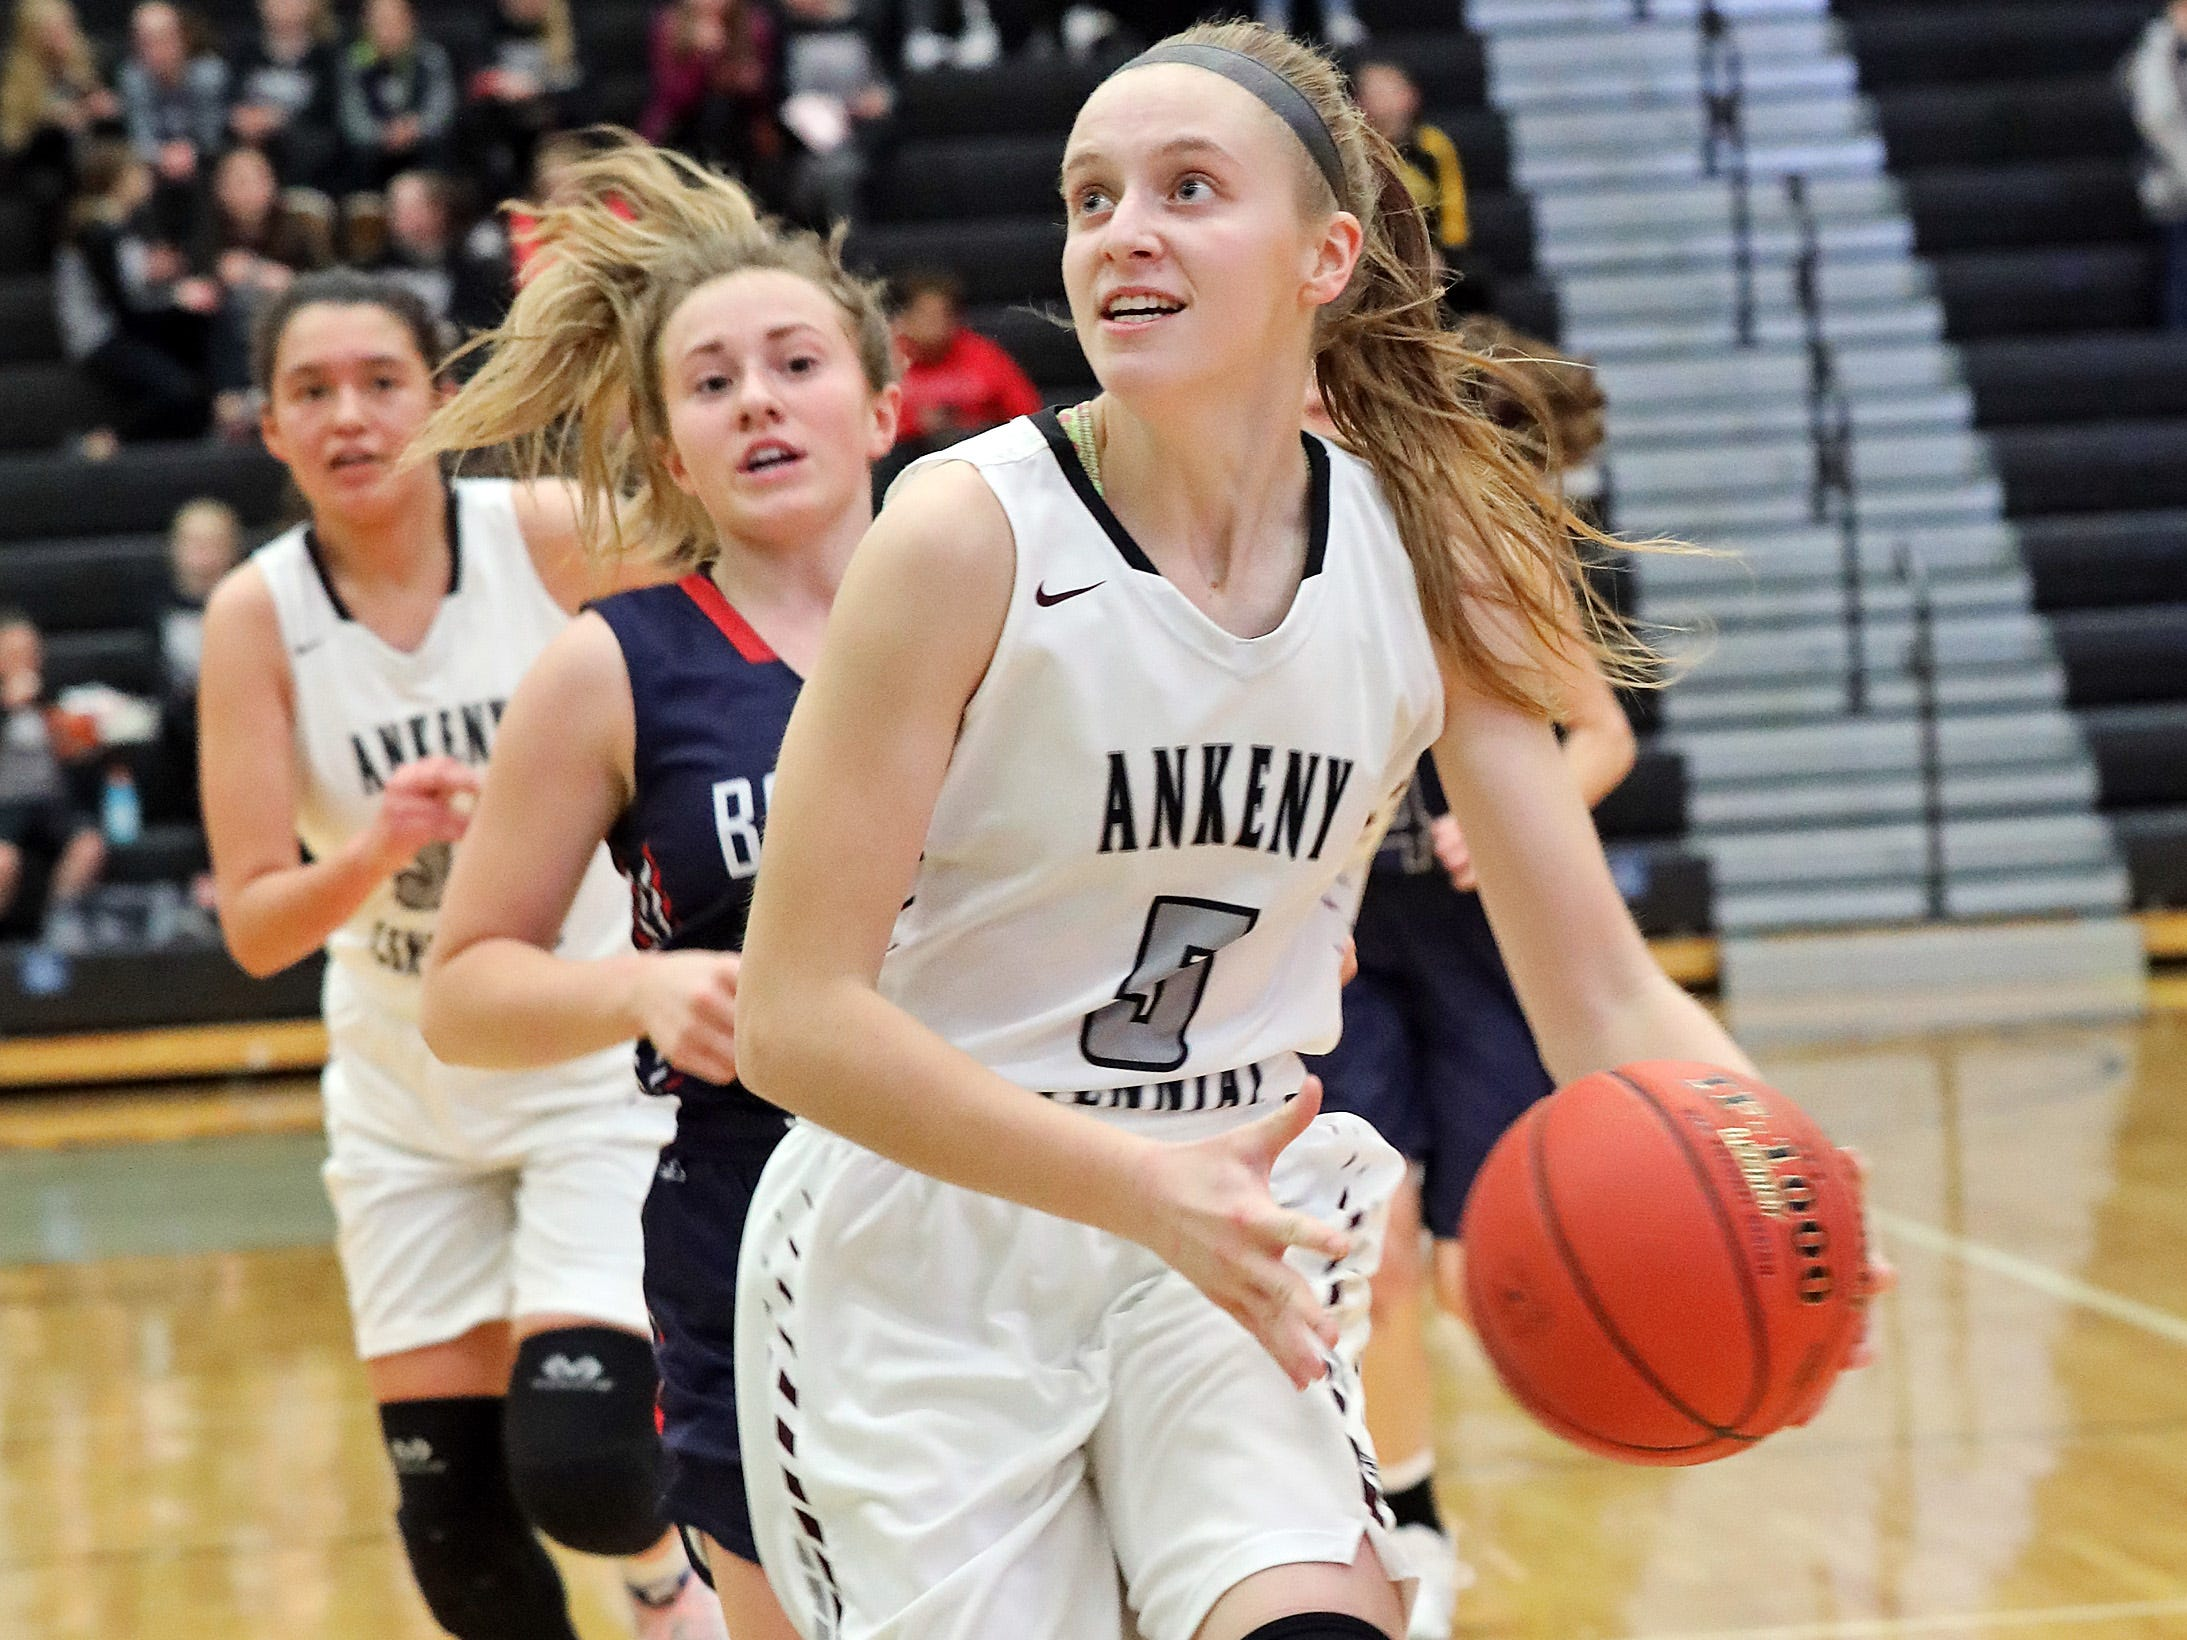 Ankeny Centennial junior Taylor Runchey heads for a lay-up as the Marshalltown Bobcats compete against the Ankeny Centennial Jaguars in high school girls basketball on Tuesday, Jan. 8, 2019 at Ankeny Centennial High School.